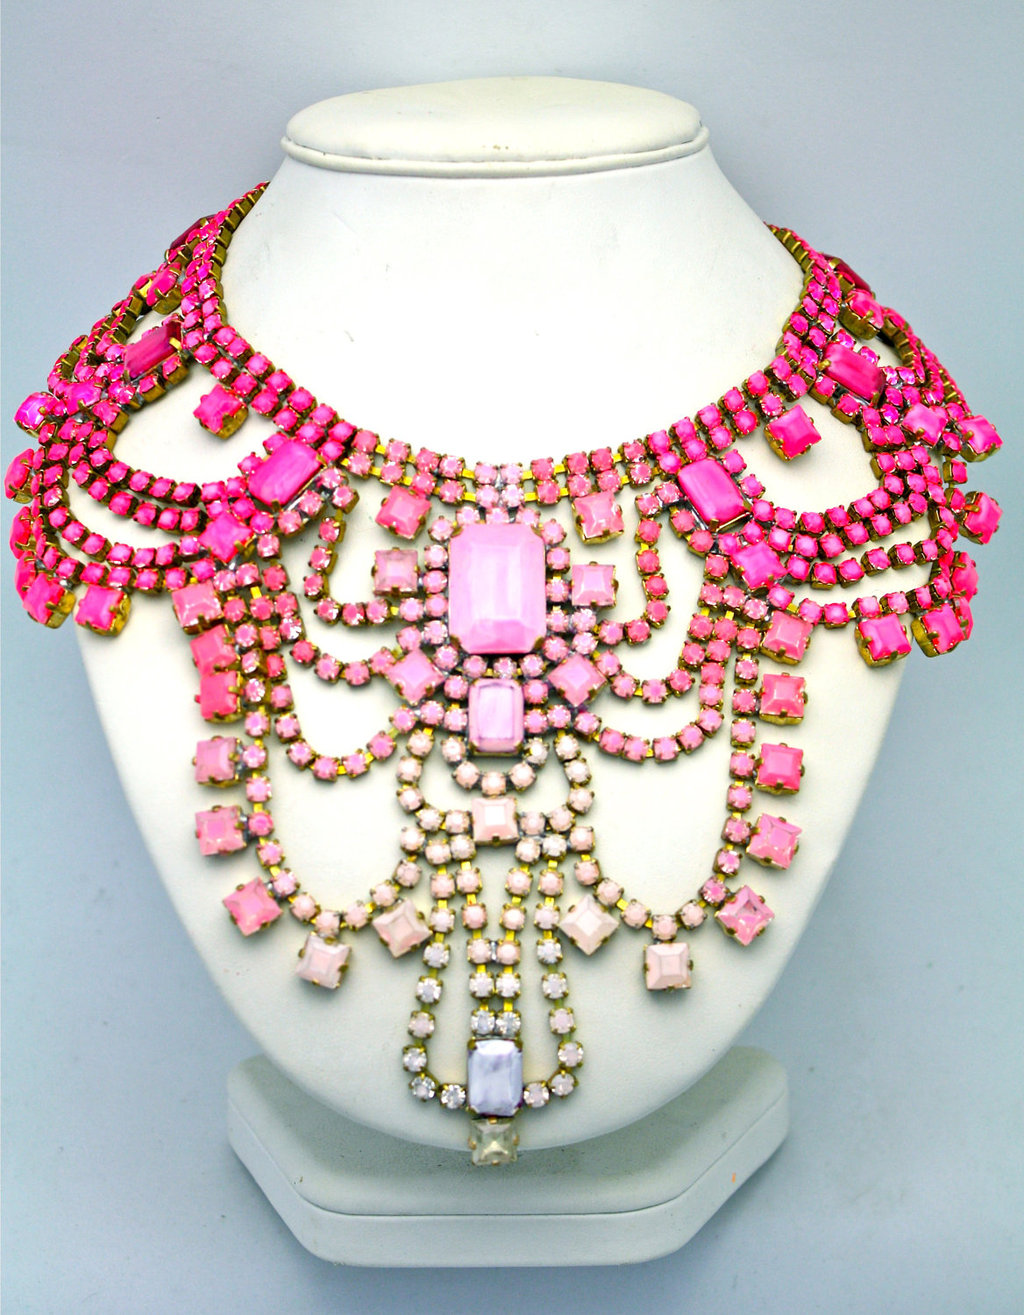 Bridesmaid-gift-ideas-bright-statement-necklace-pink-ombre.full